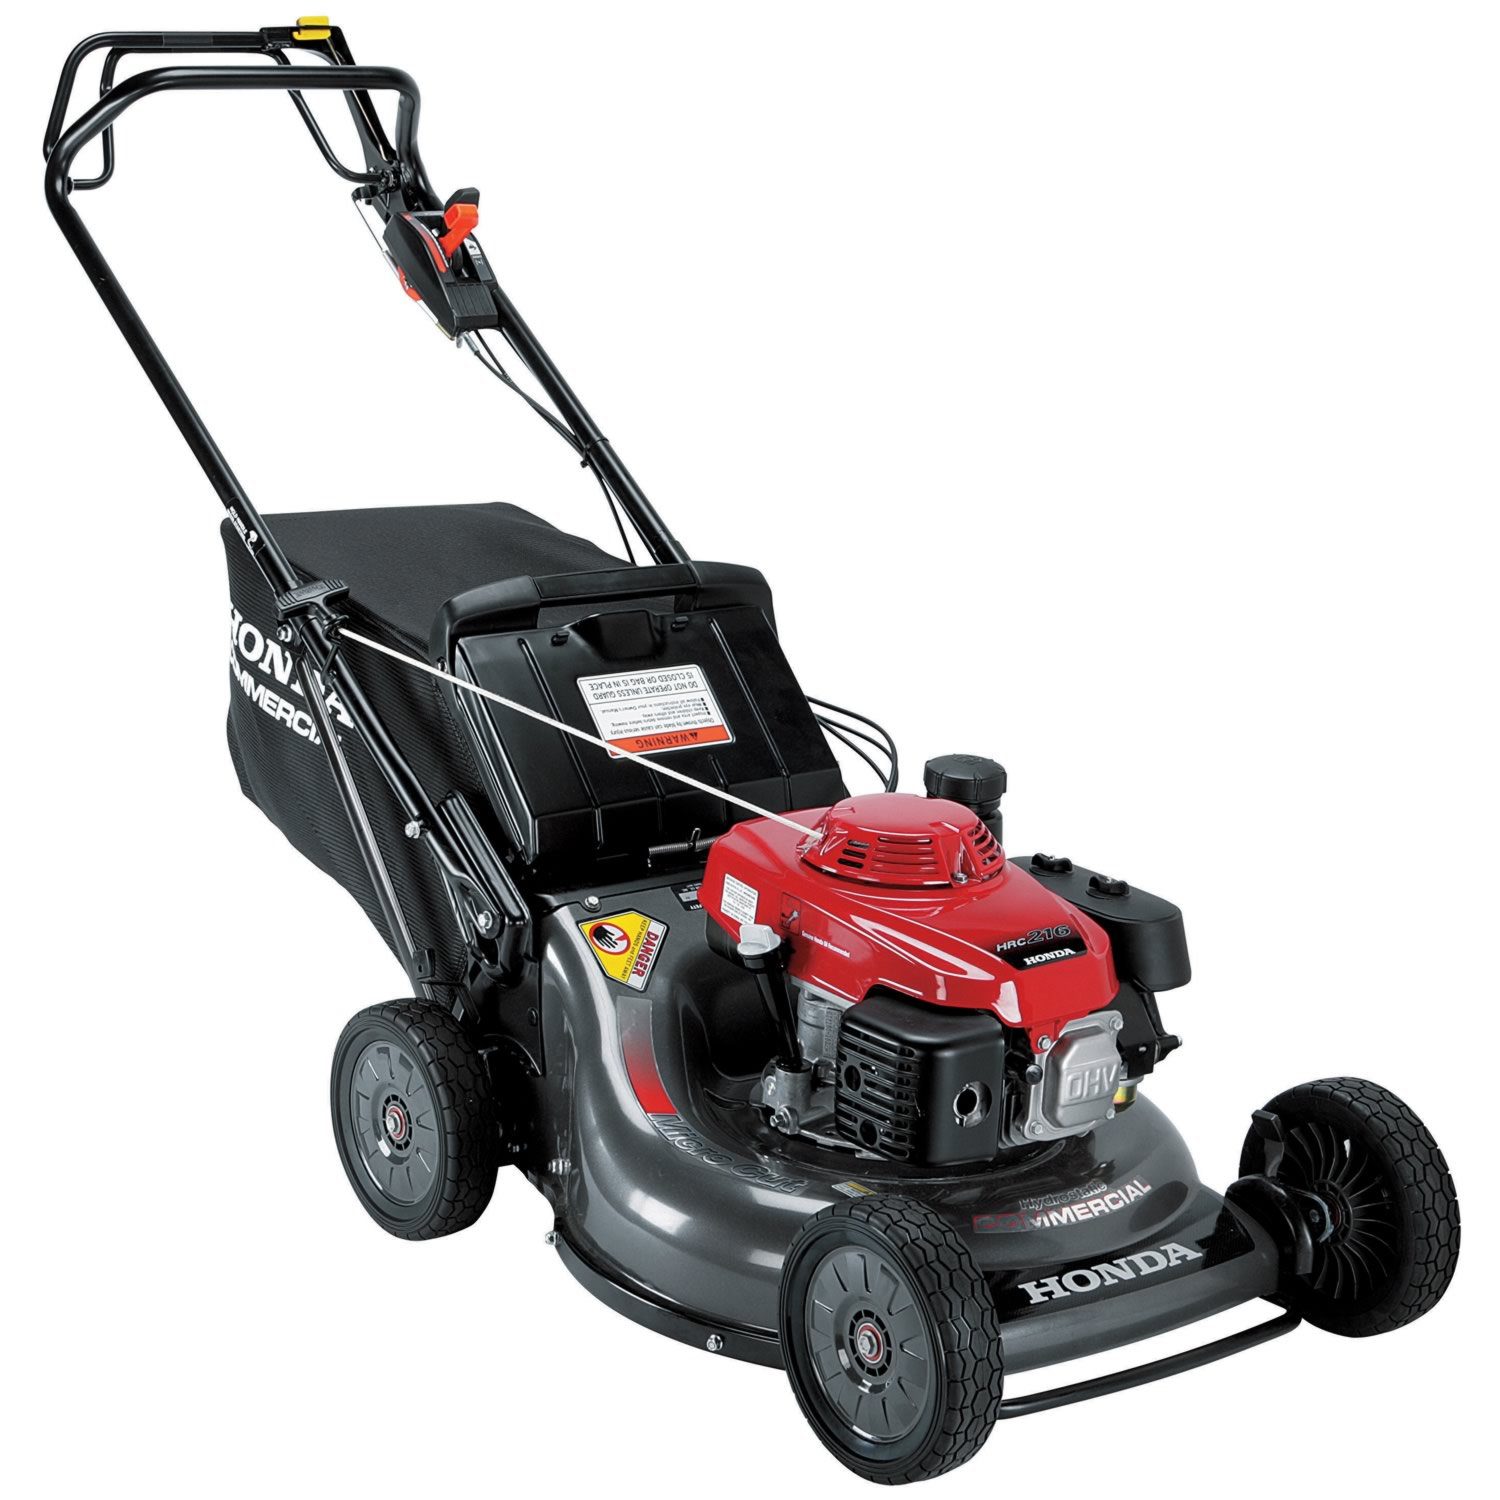 Best Lawn Mowers For Large Yards 2020